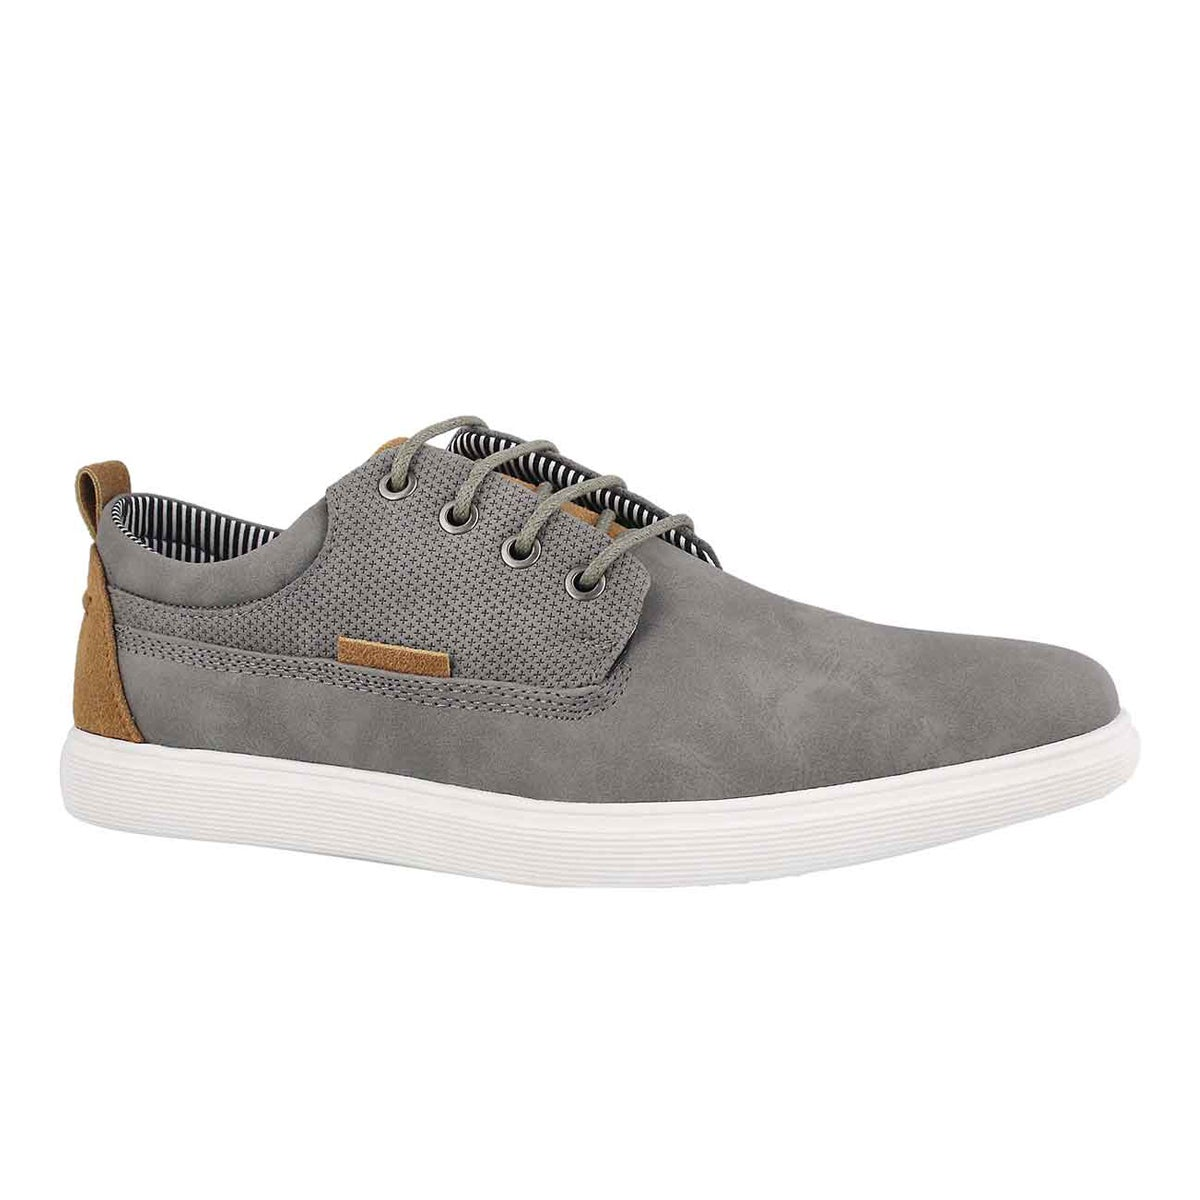 Men's RANGLE grey lace up casual oxfords